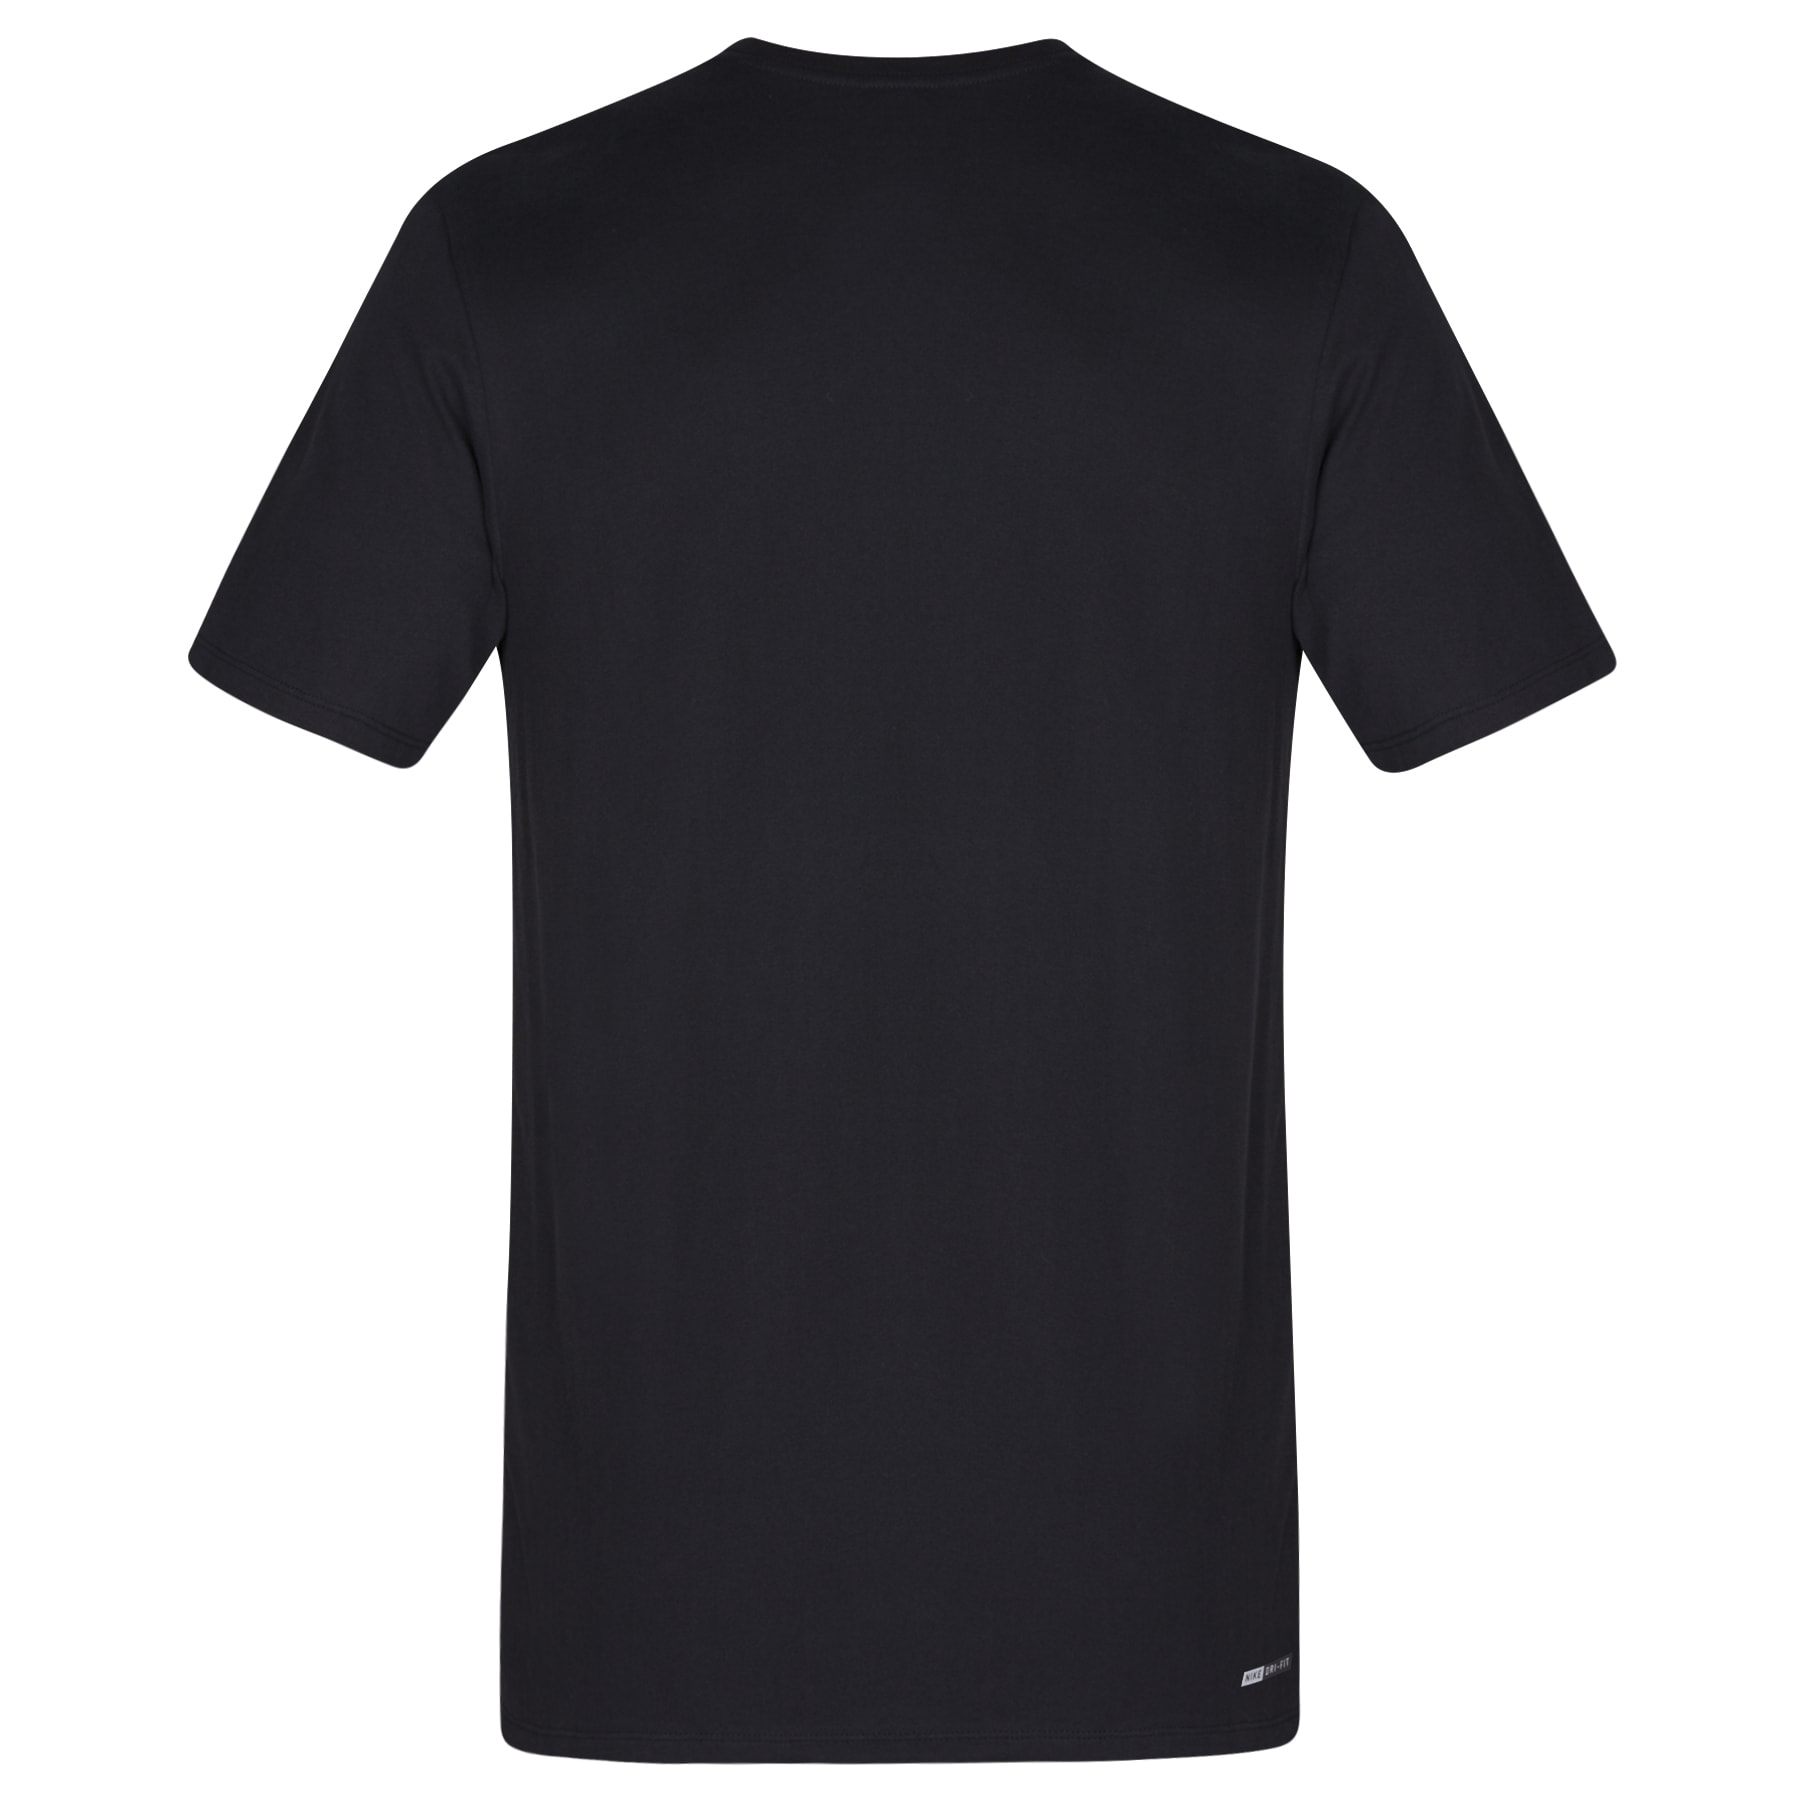 On sale hurley pair of dice dri fit t shirt up to 45 off for Dri fit shirts on sale